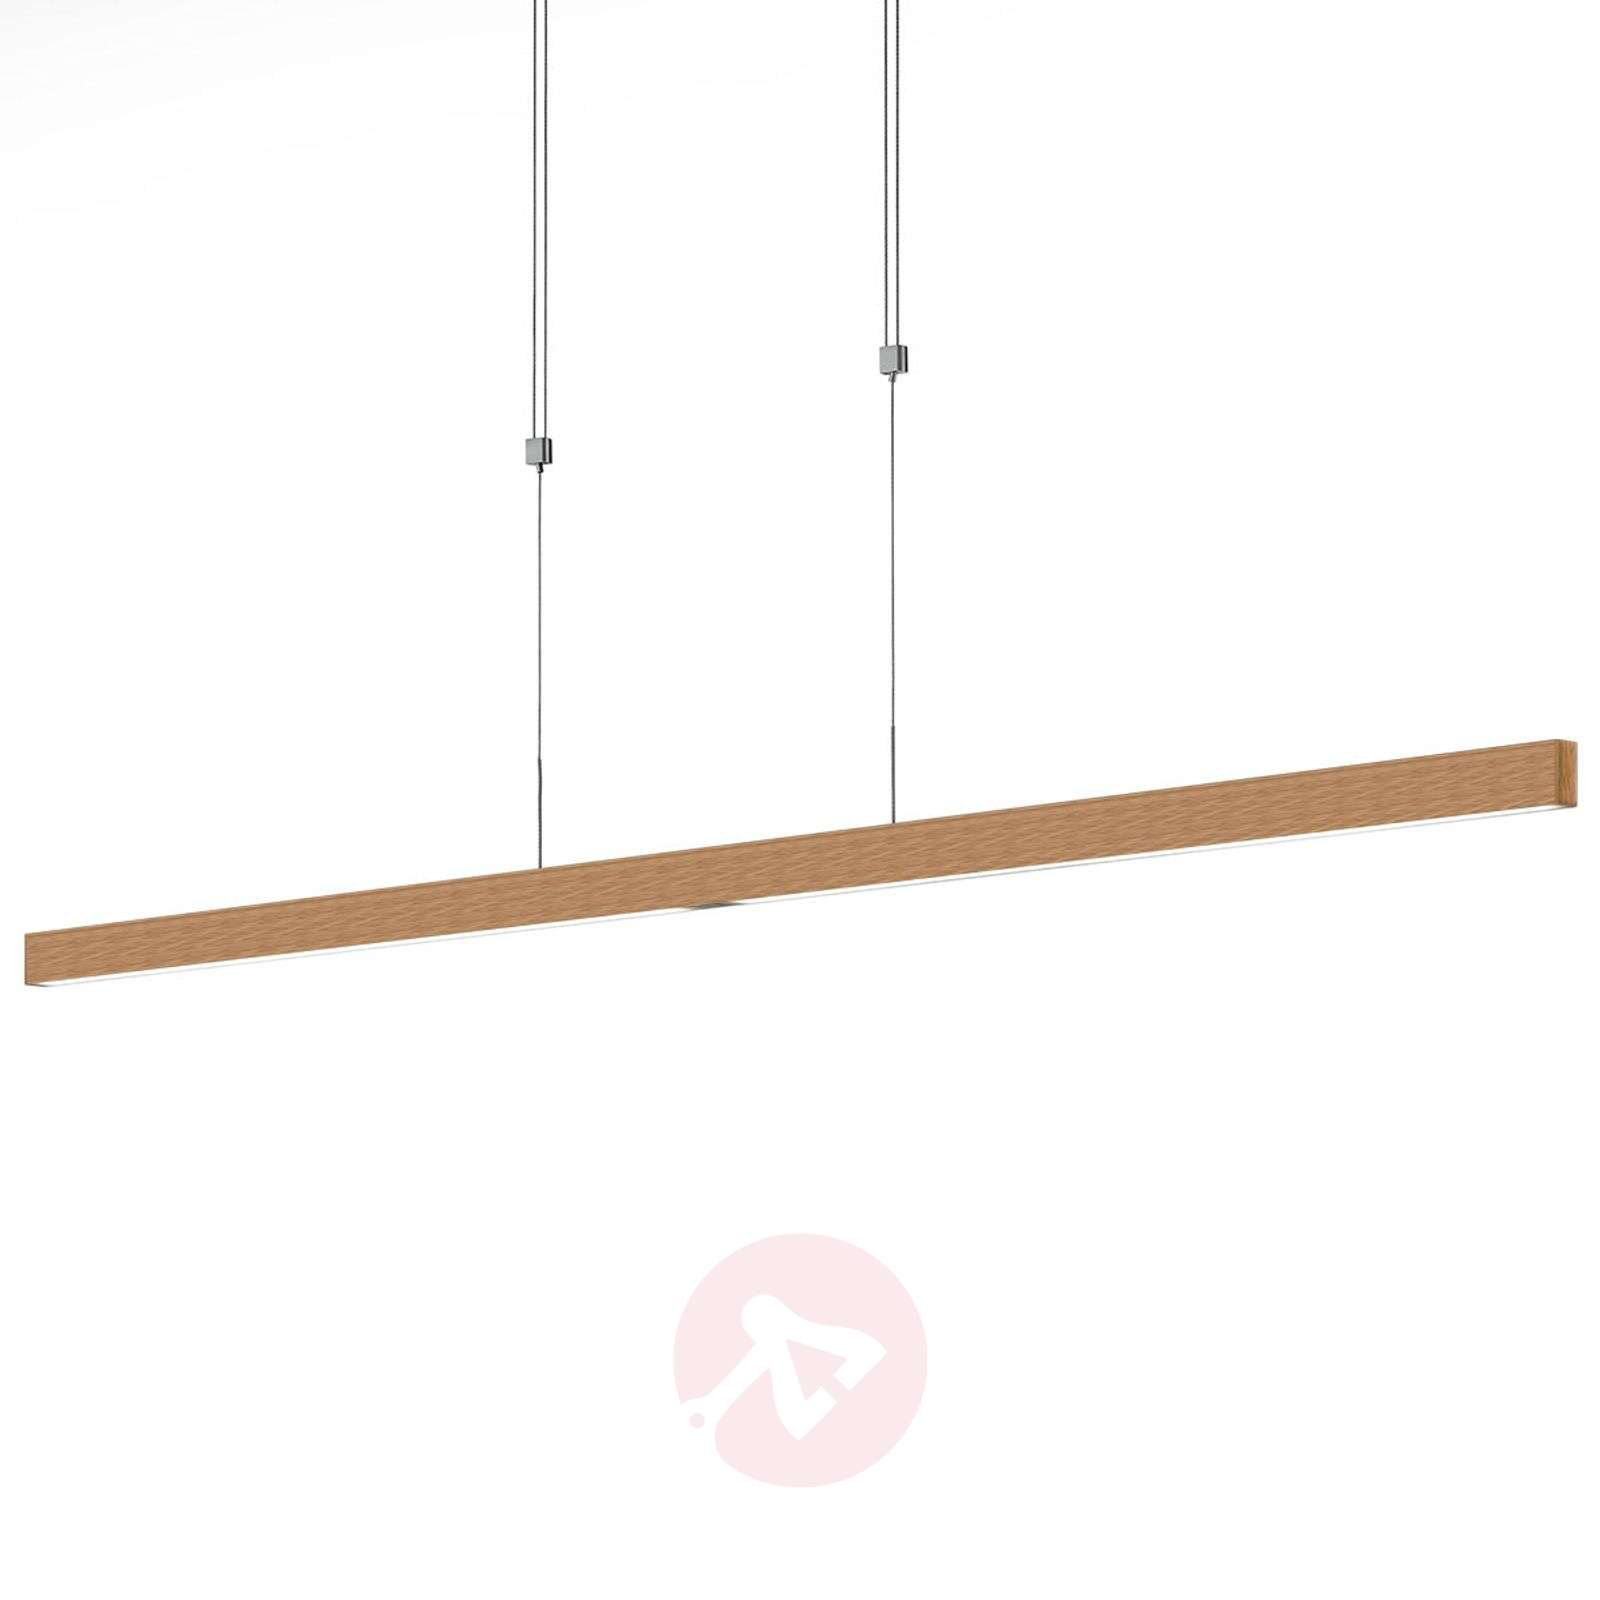 Suspension Pia capteur, look bois naturel-4002696-01